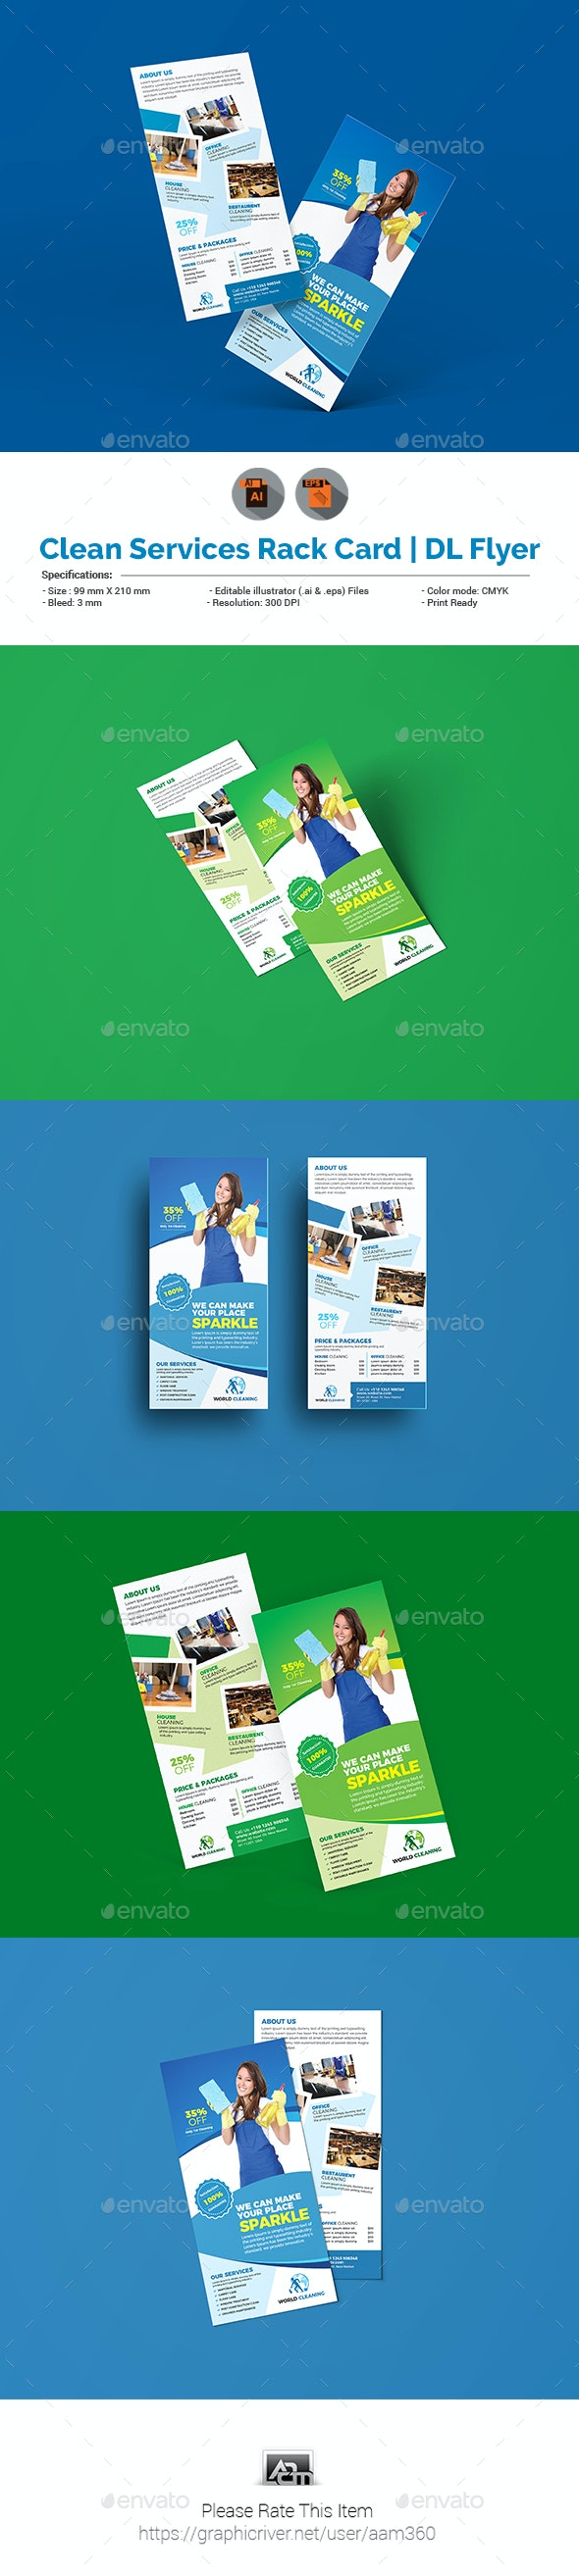 Cleaning Service Rack Card DL Flyer Template - Corporate Flyers